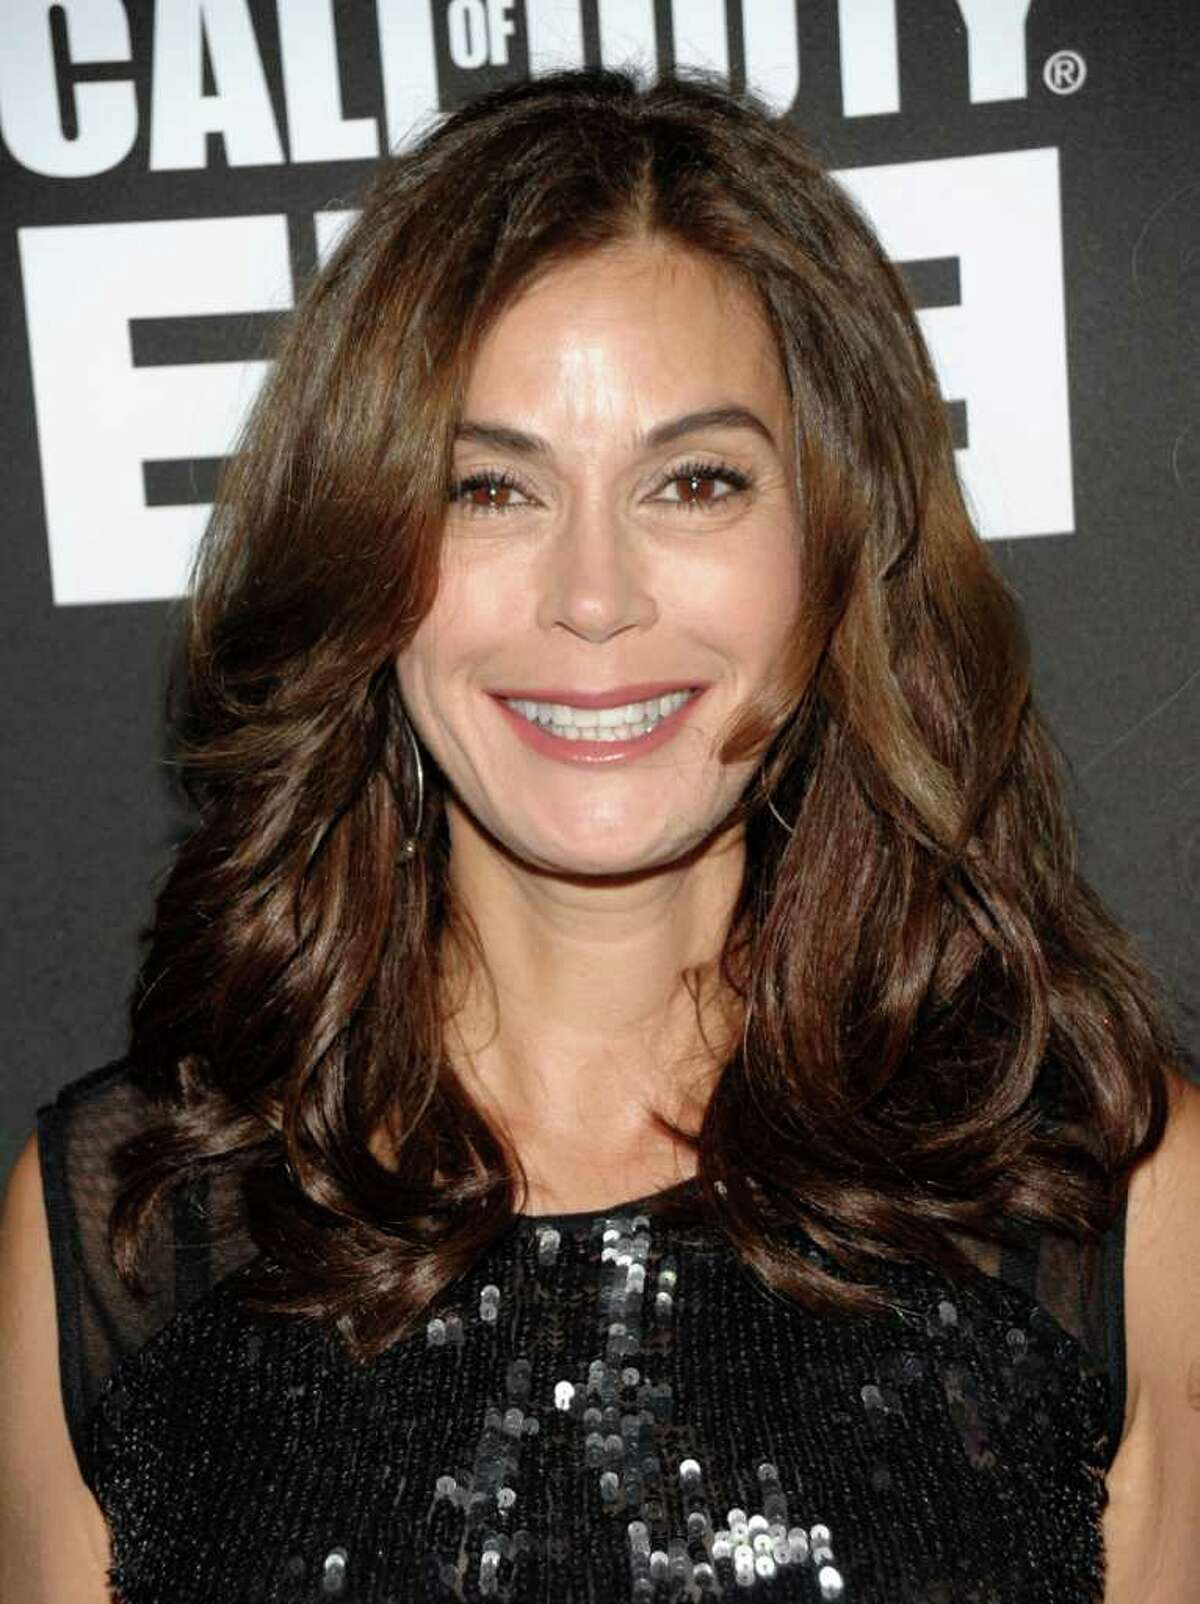 Actress Teri Hatcher arrives at the Call of Duty: Modern Warfare 3 launch party in Los Angeles on Saturday, Sept. 3, 2011. (AP Photo/Dan Steinberg)